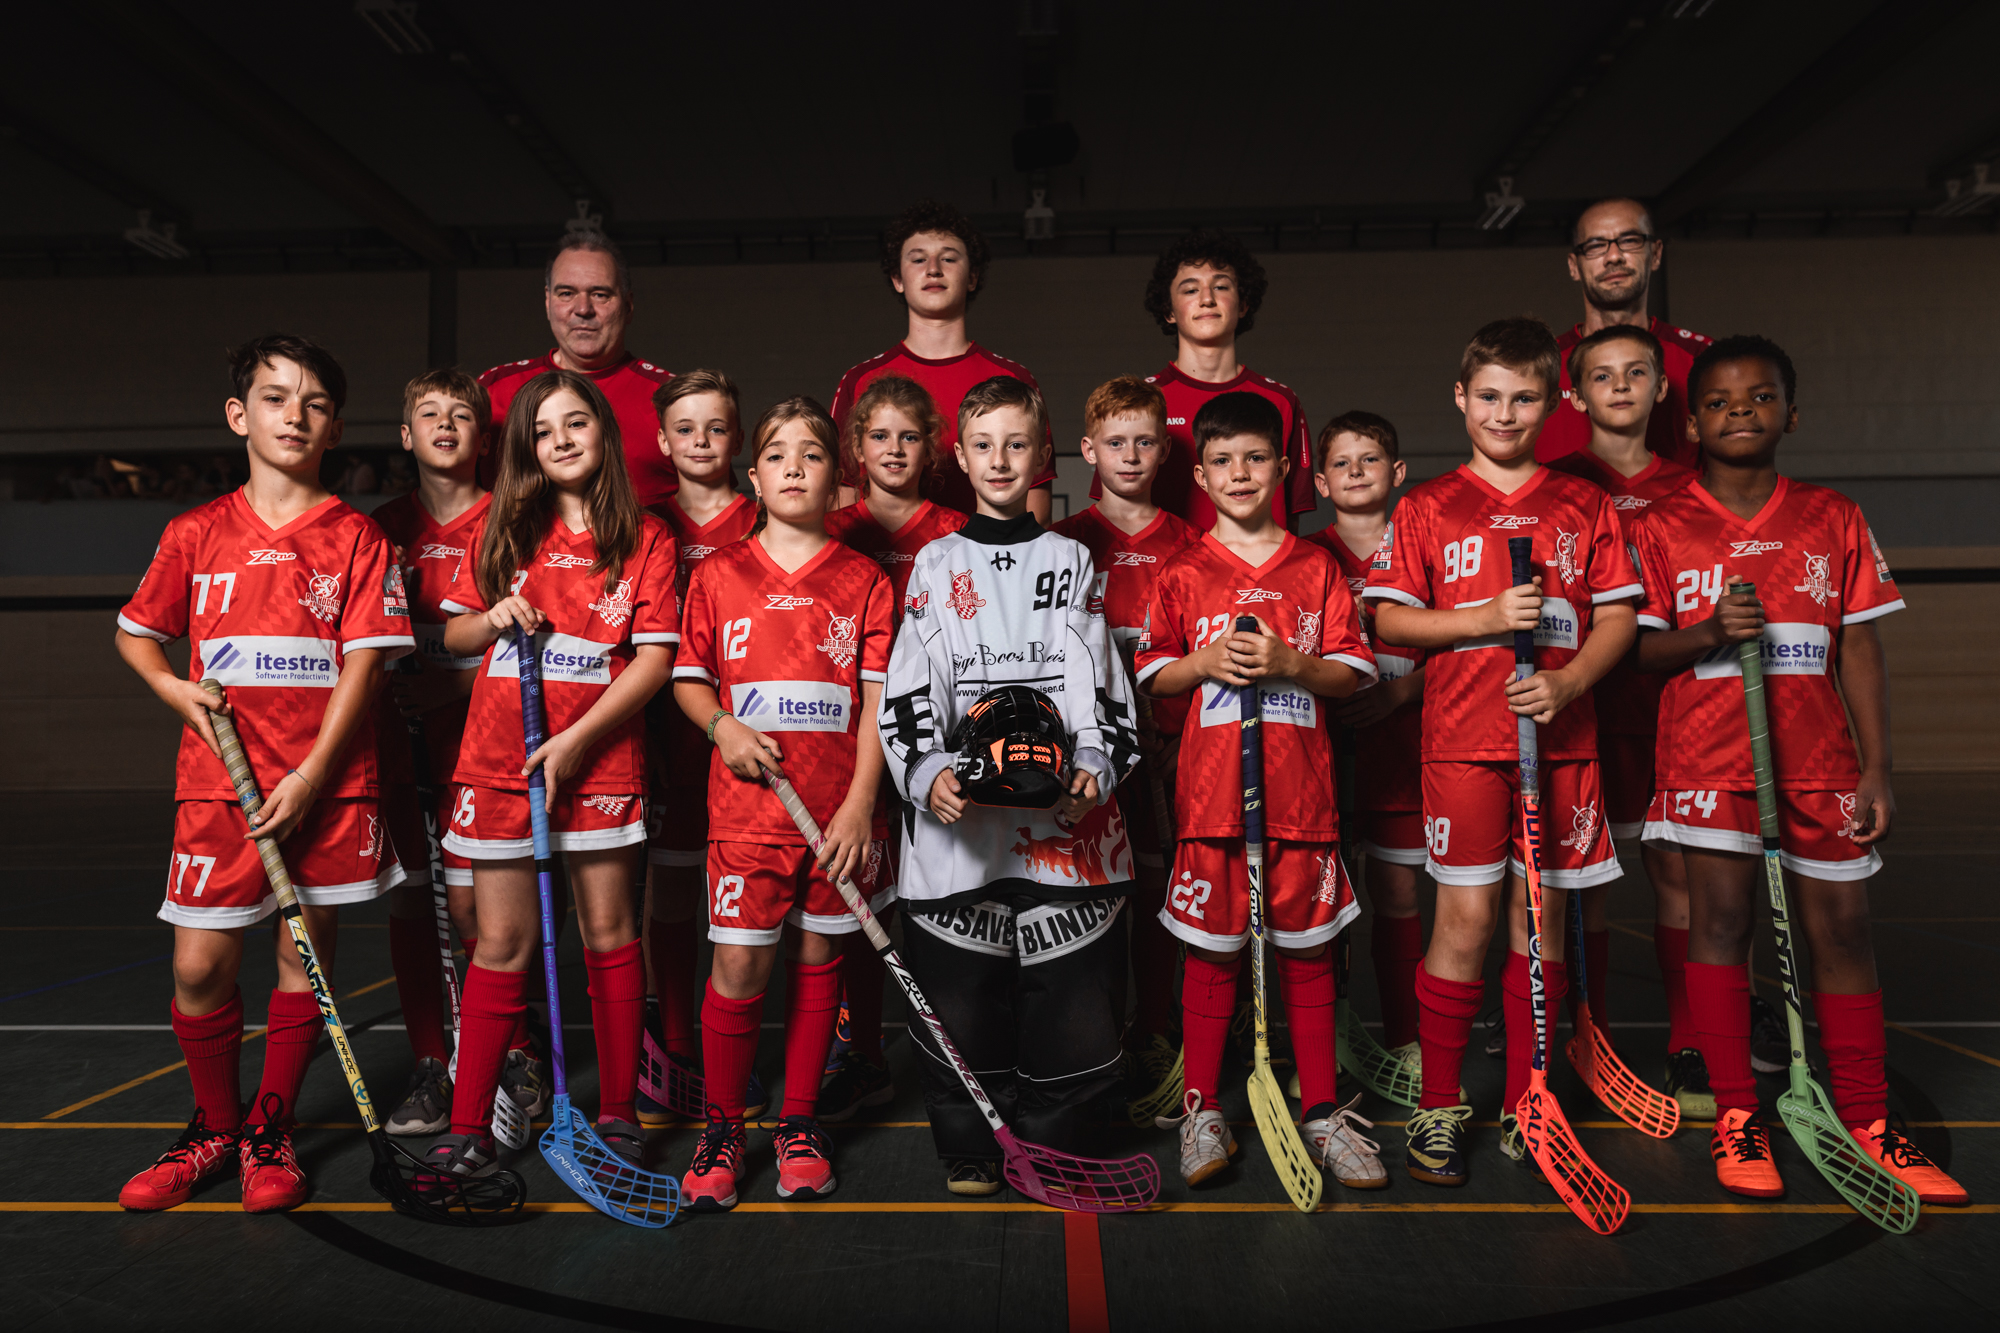 U11 in der Saison 2018/2019